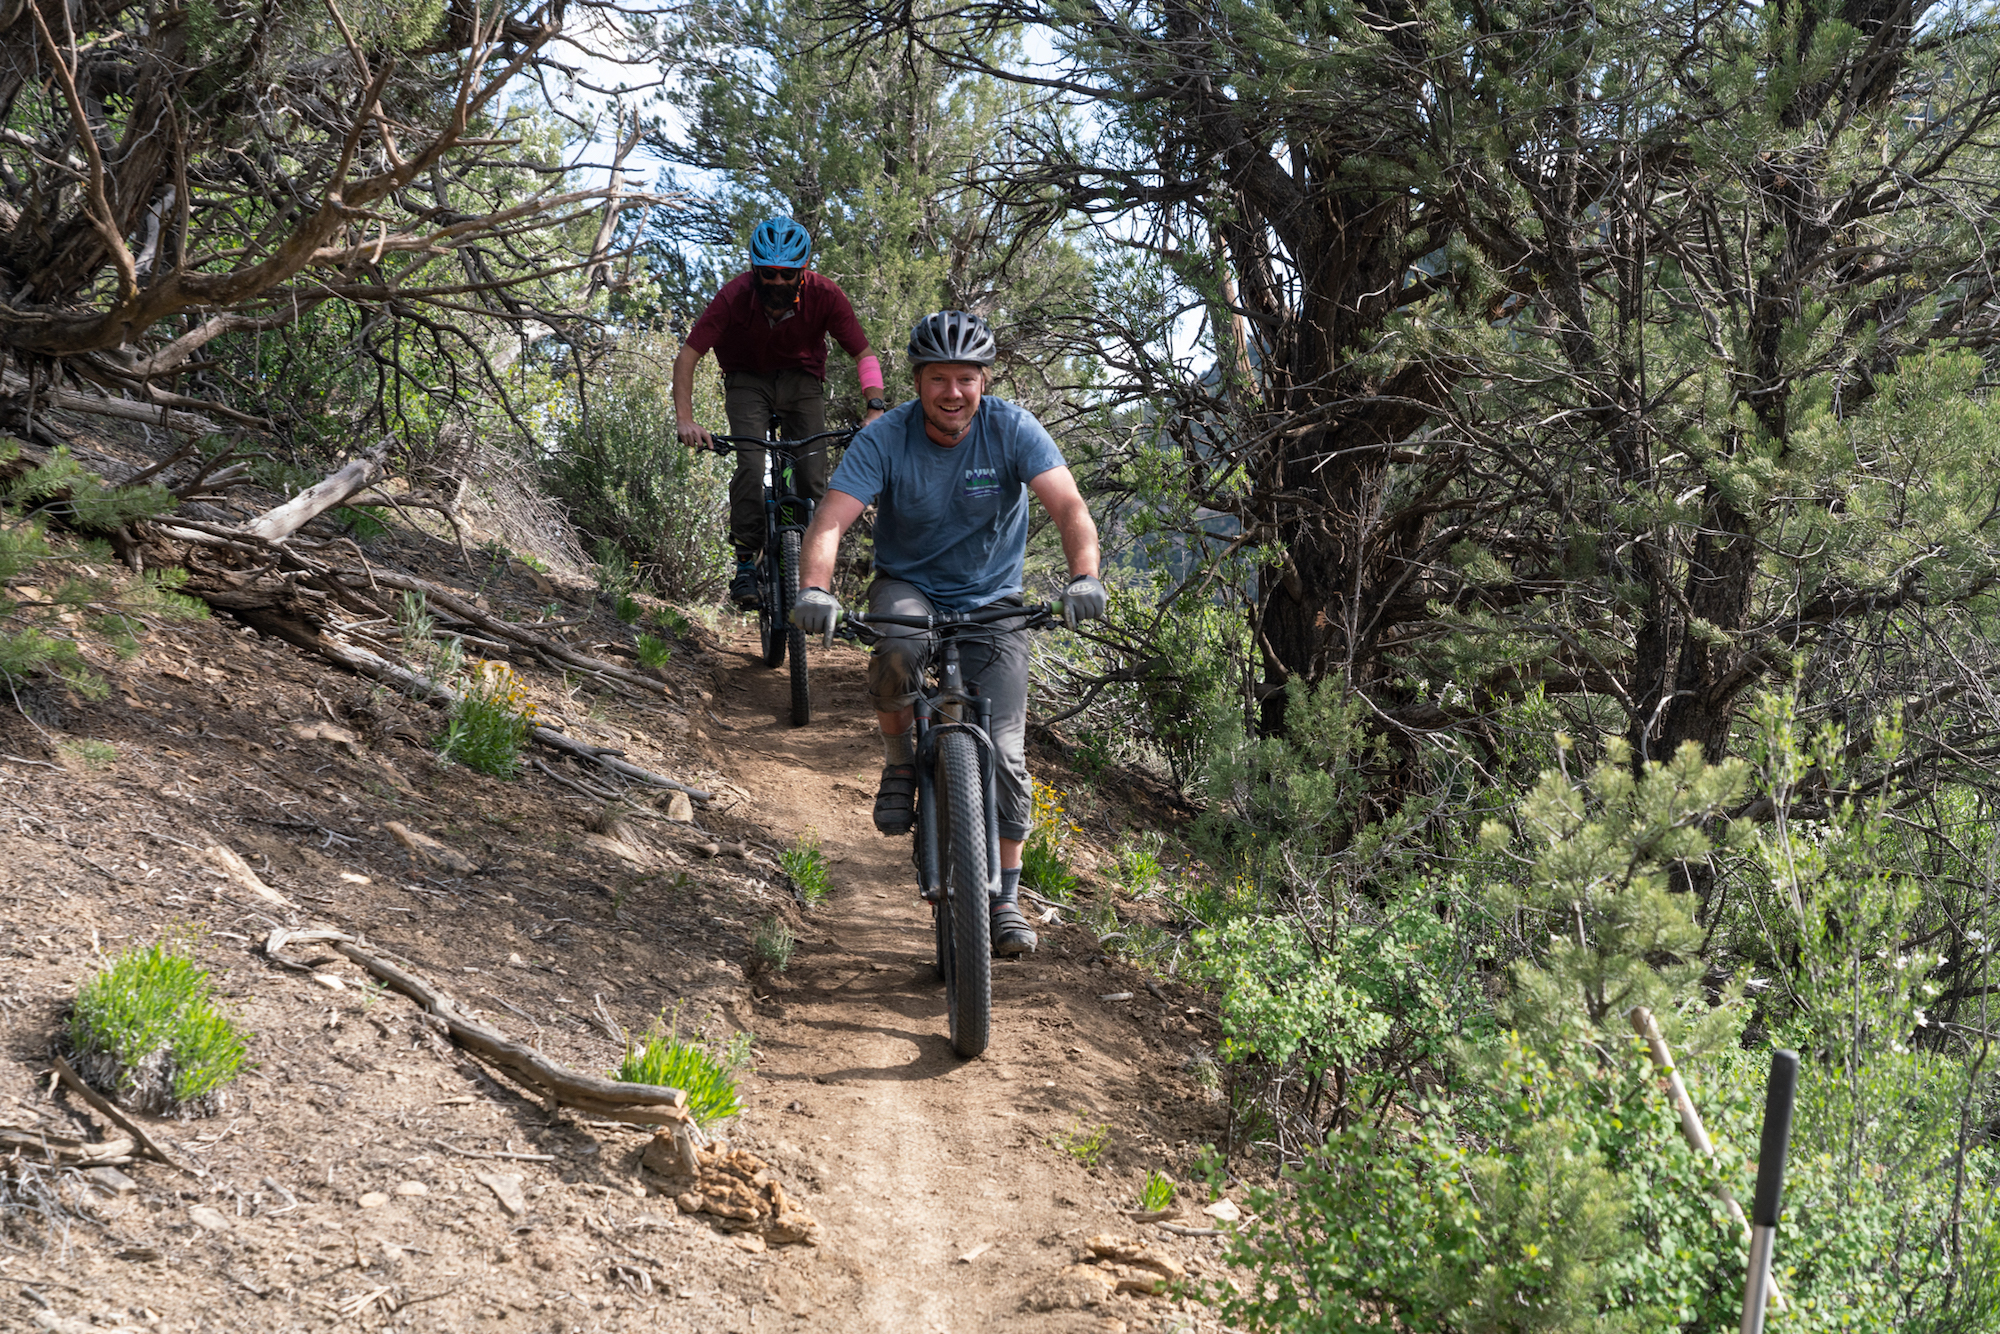 Checking out the trails on Scullbinder Ranch.